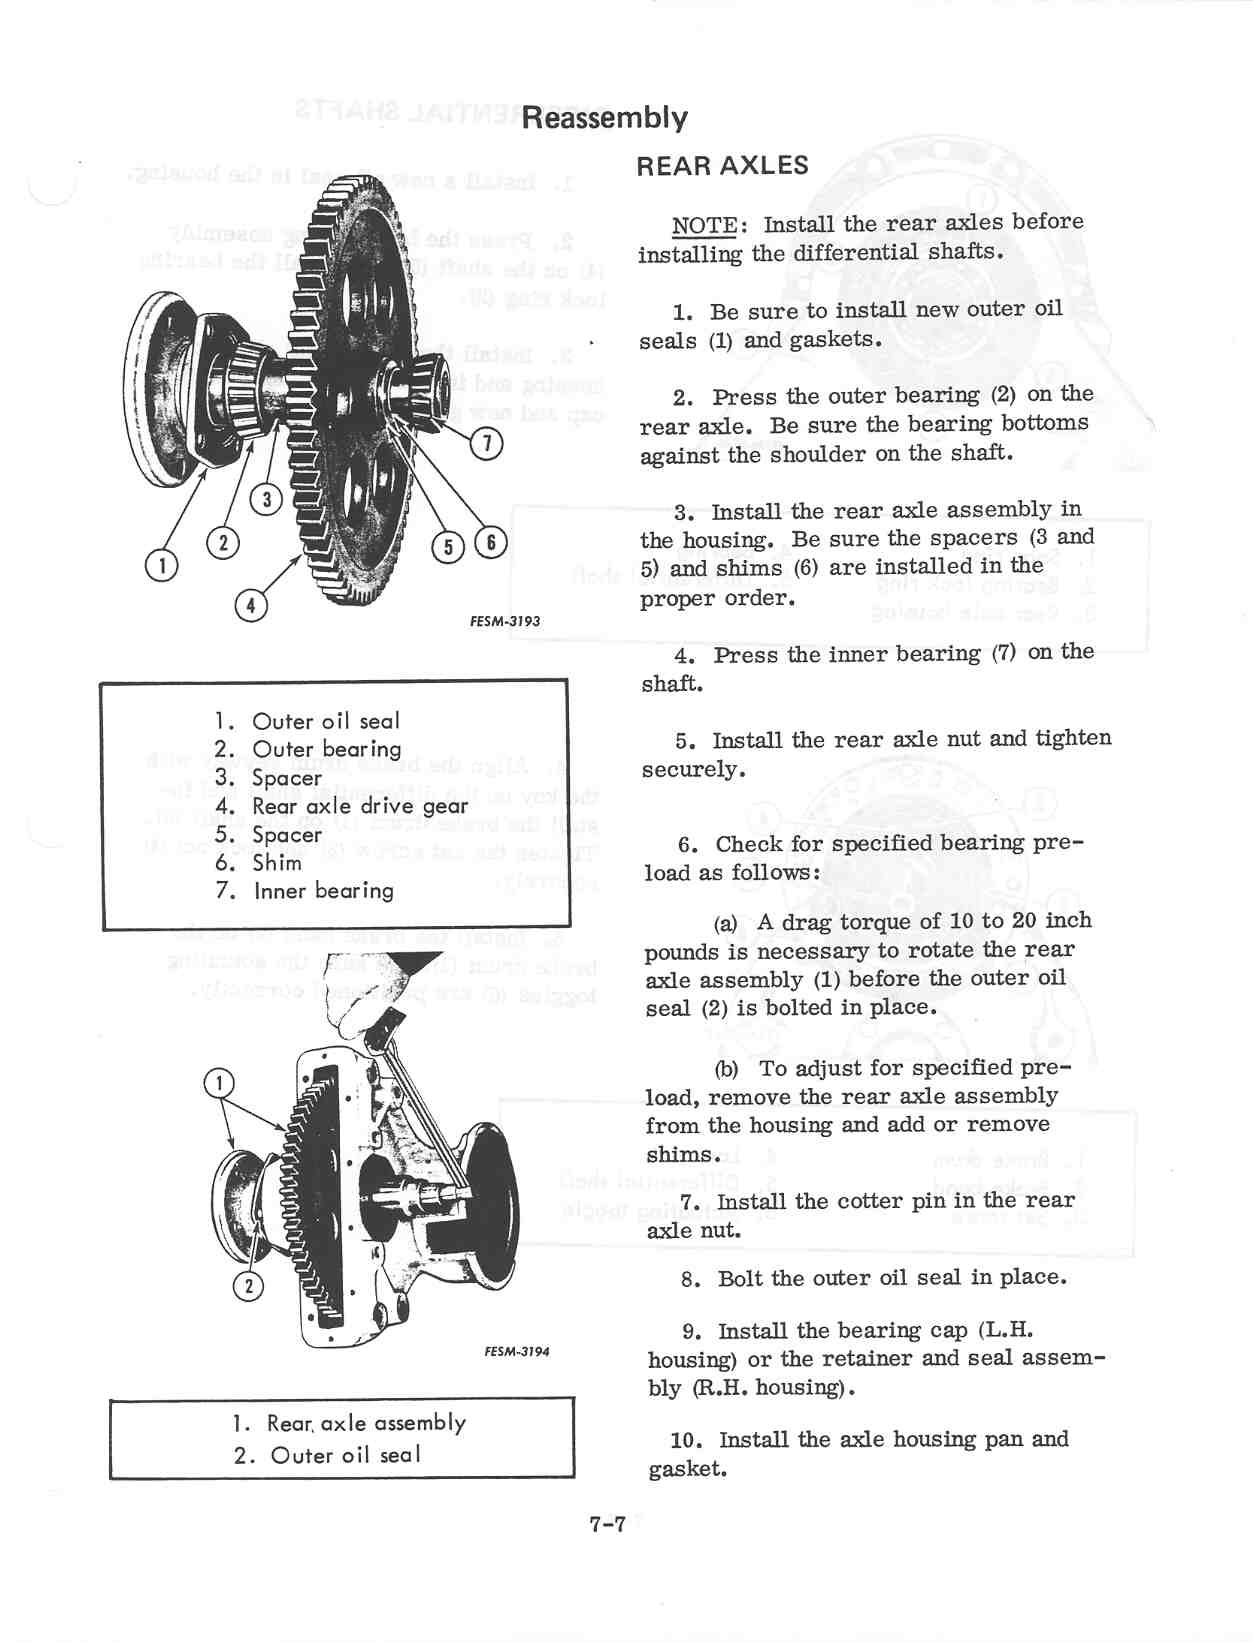 Farmall Cub Final Drive Parts Diagram Schematics Wiring Diagrams Harness Replacement Bearing Rh Farmallcub Com 1954 For